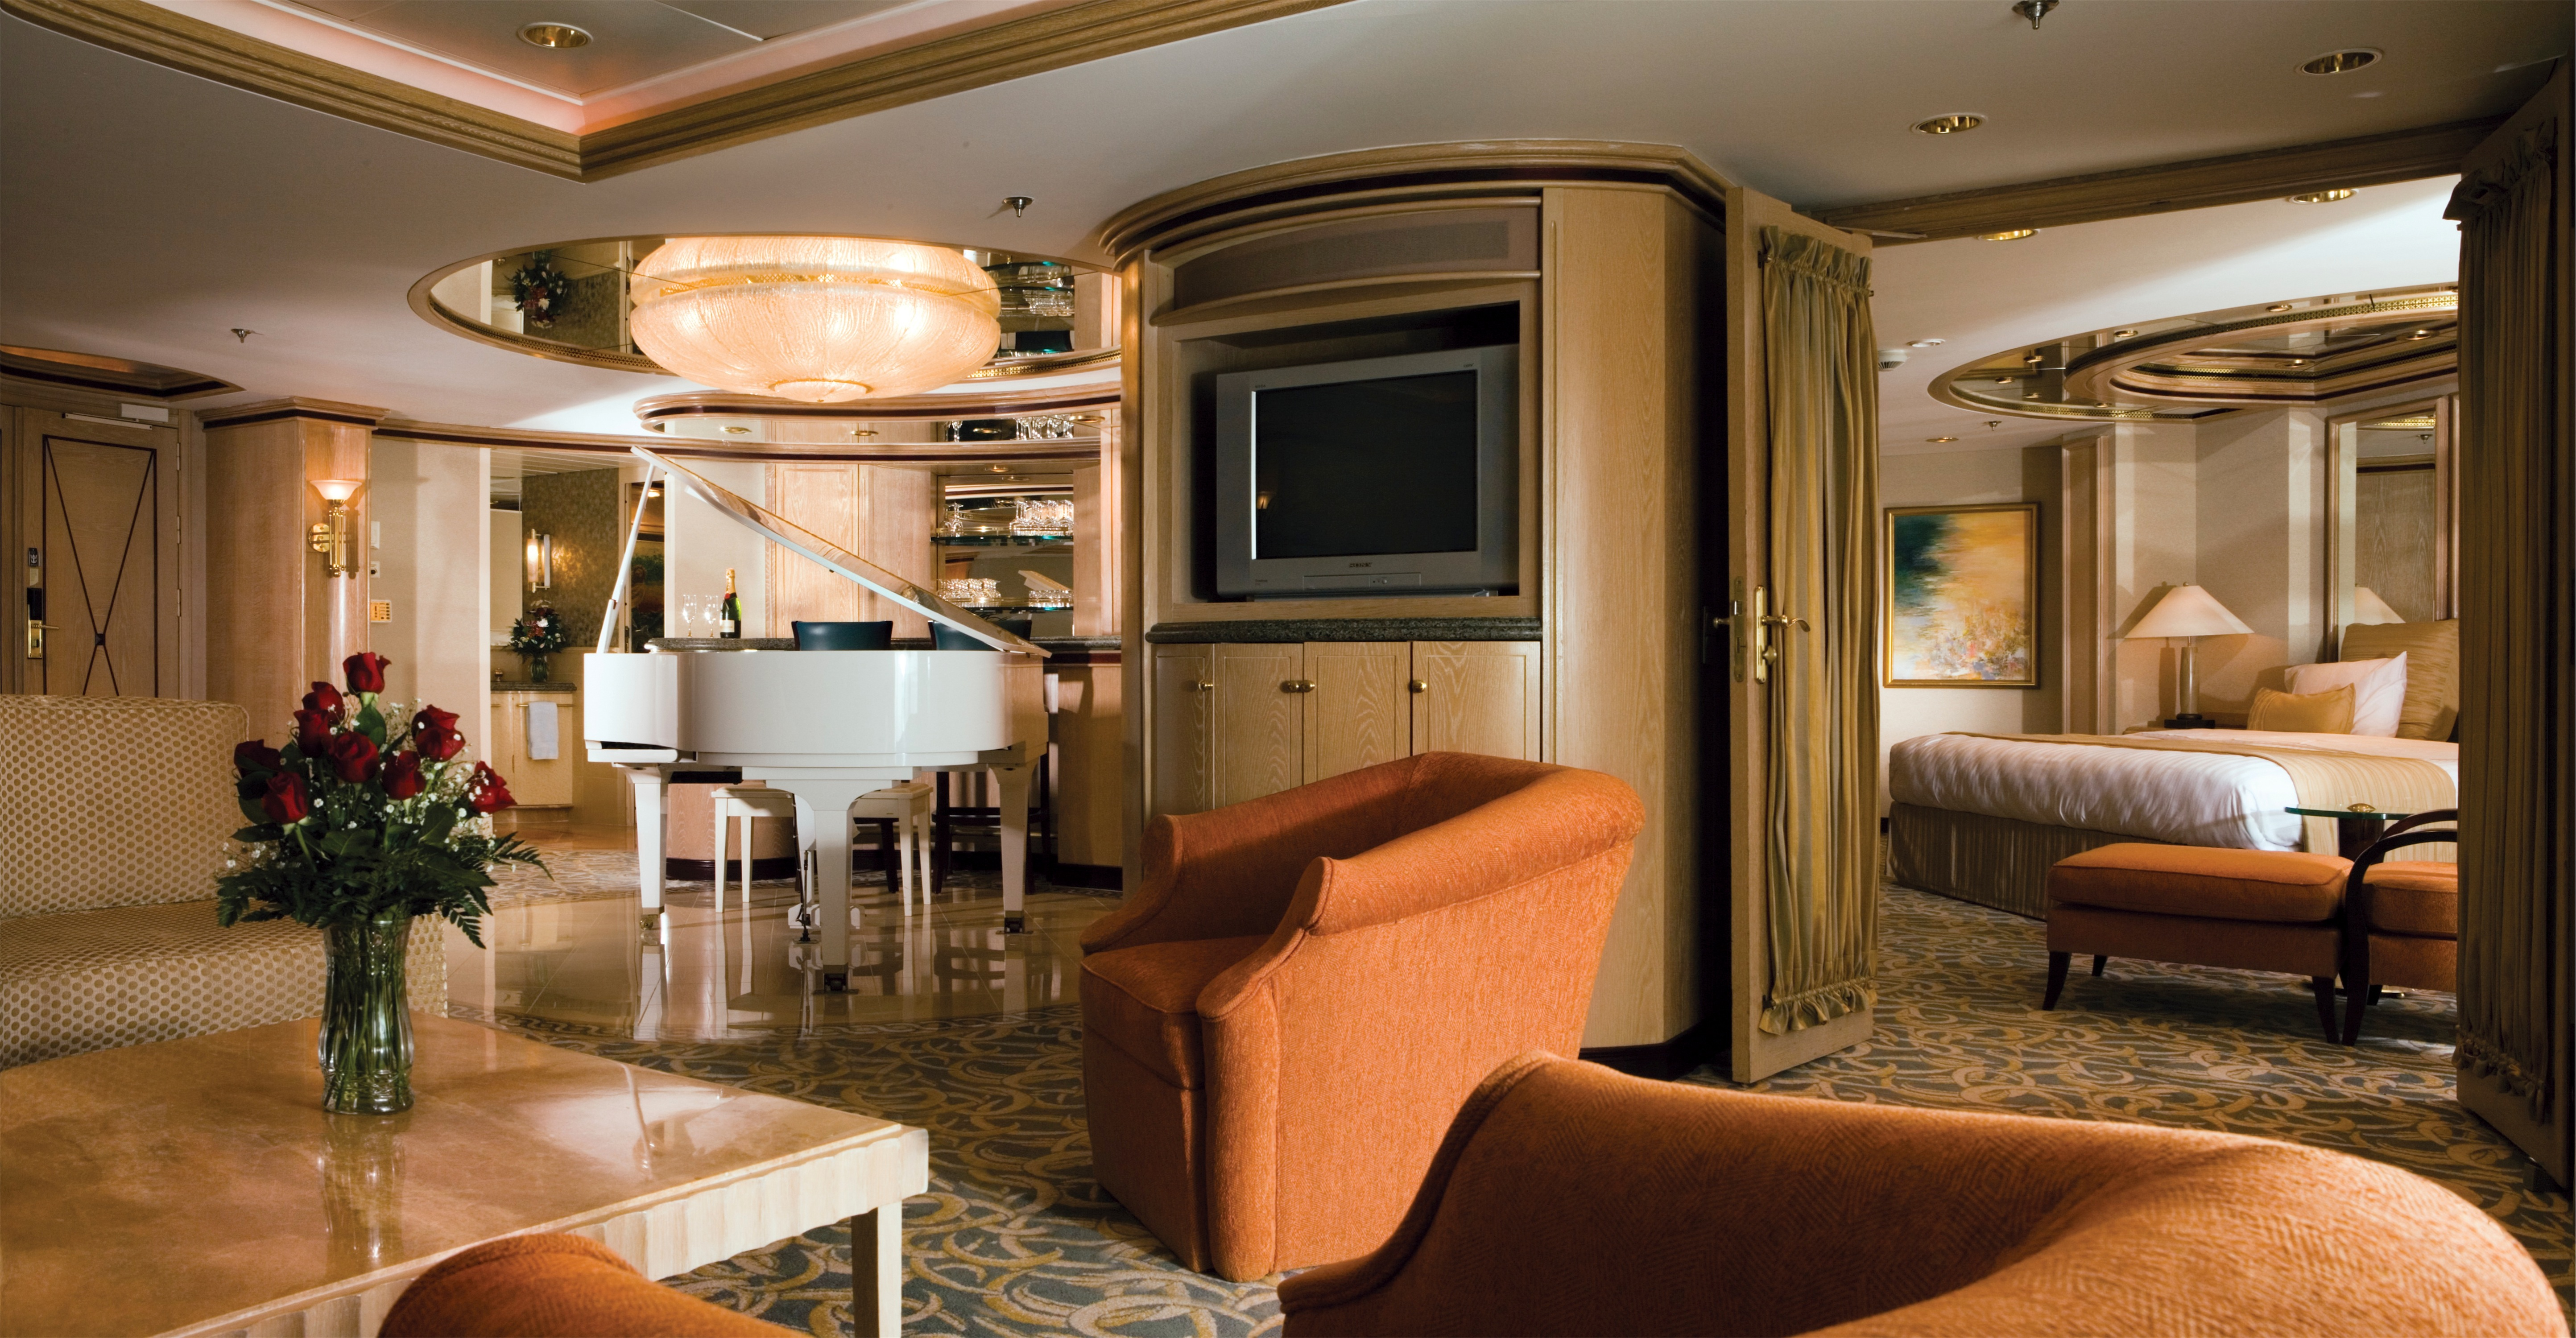 Rhapsody Of The Seas Cruise Direction Tailor Made Cruise Holidays